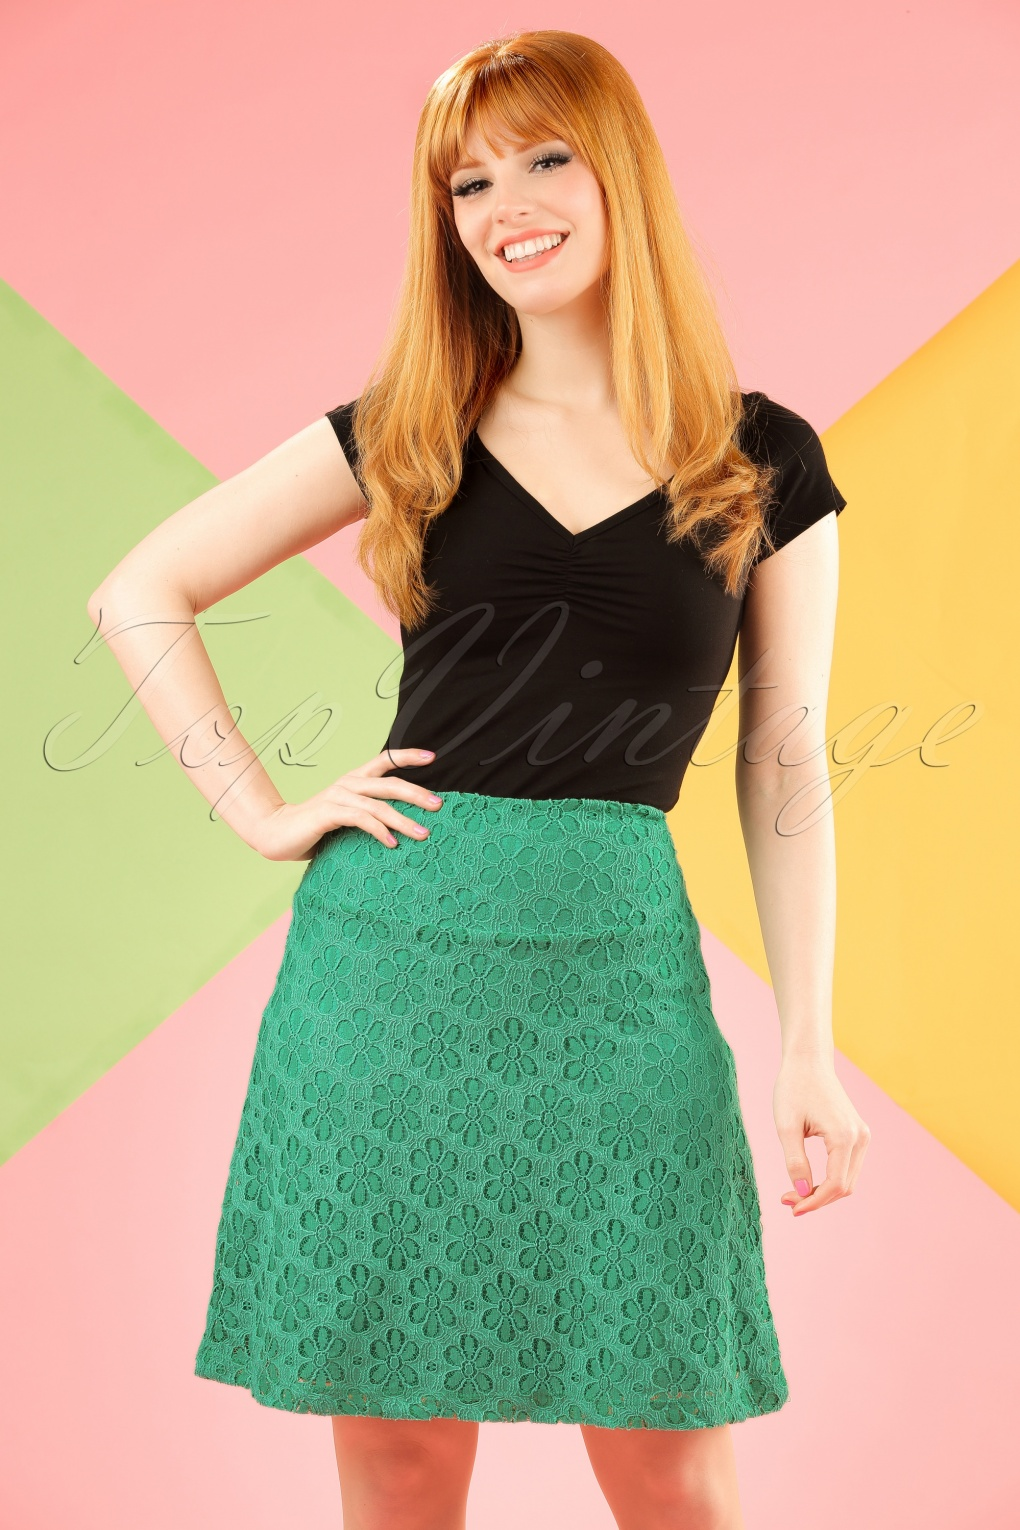 Retro Skirts: Vintage, Pencil, Circle, & Plus Sizes 60s Flower Lace Borderskirt in Opal Green £59.41 AT vintagedancer.com